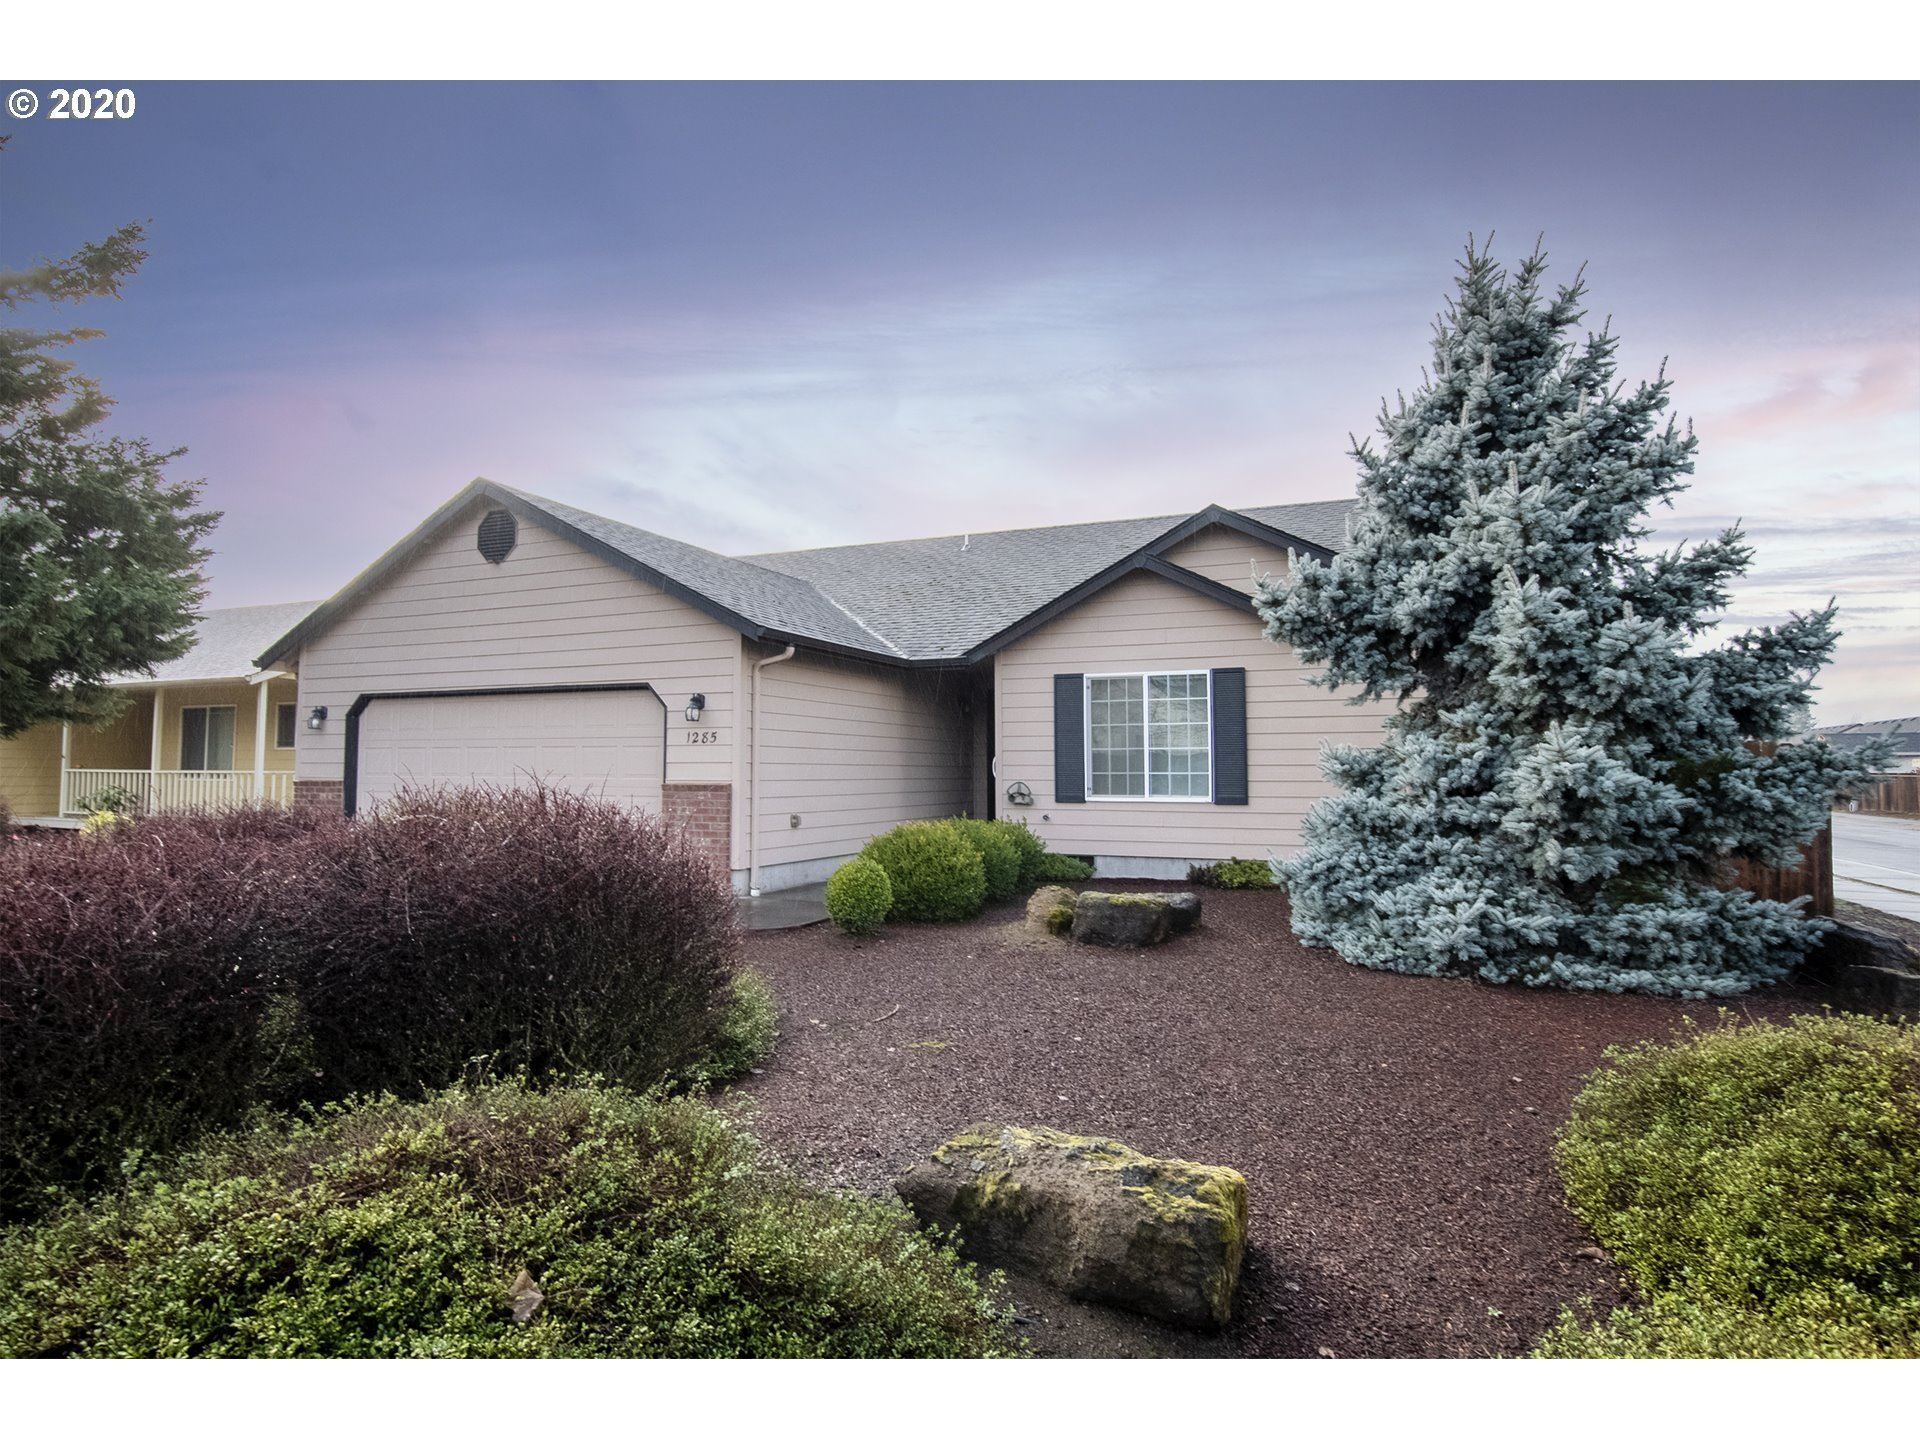 Photo for 1285 N 1ST ST, Creswell, OR 97426 (MLS # 20436356)